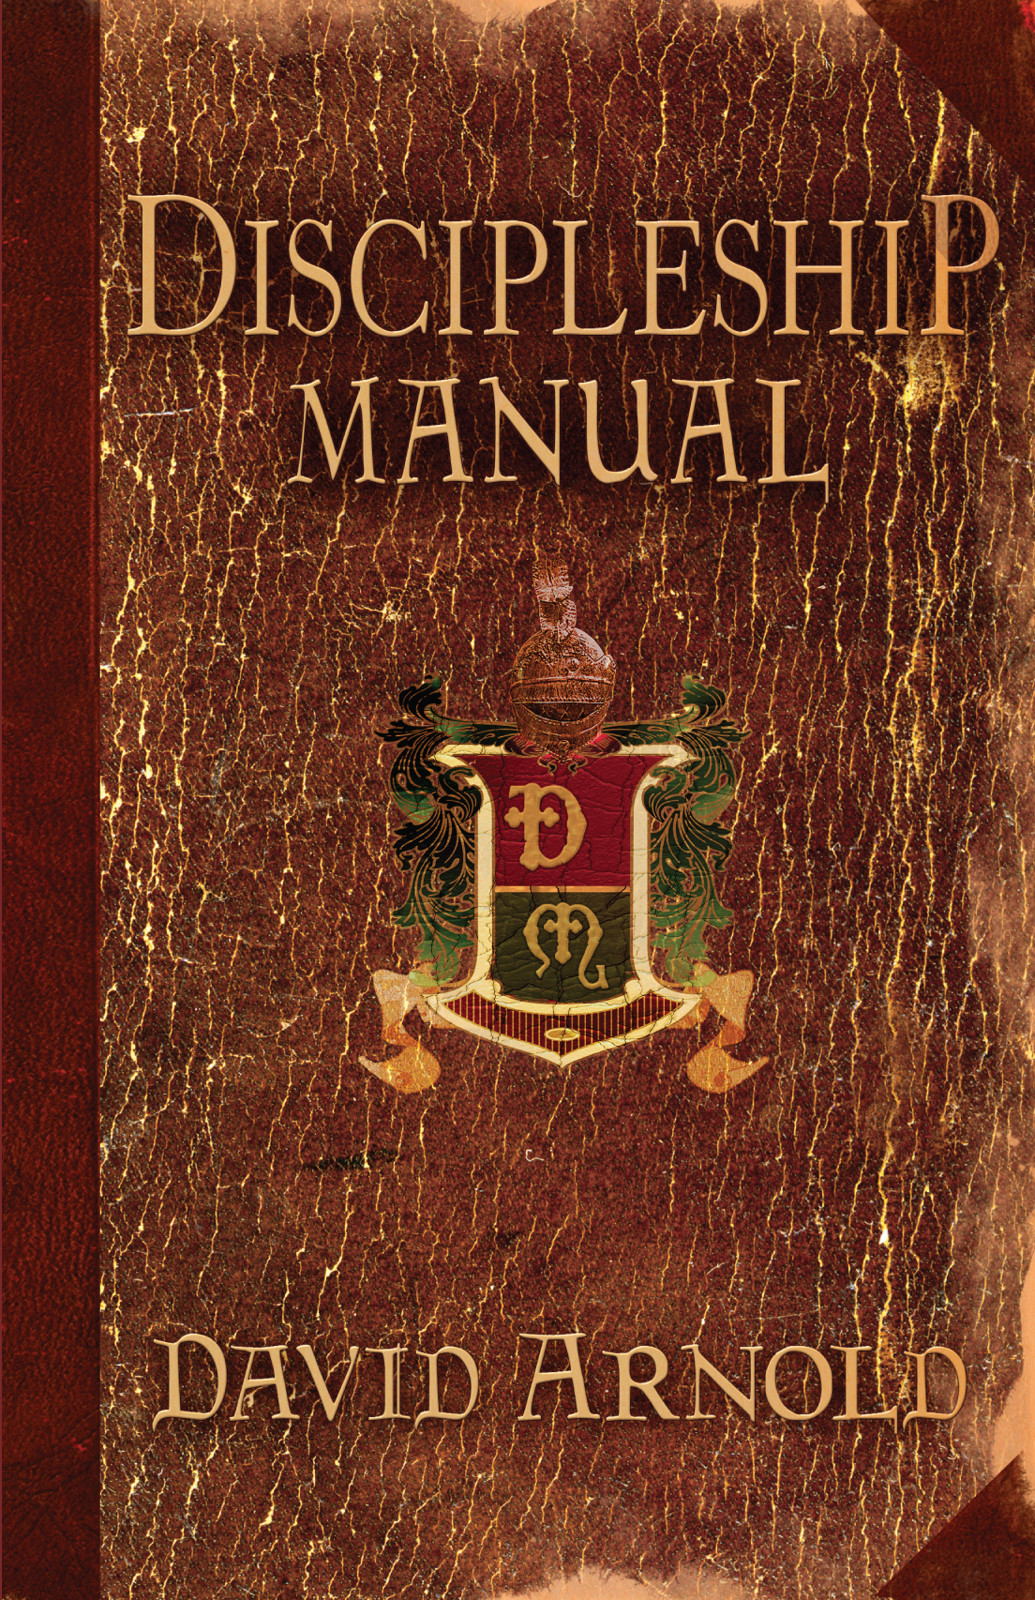 Discipleship Manual